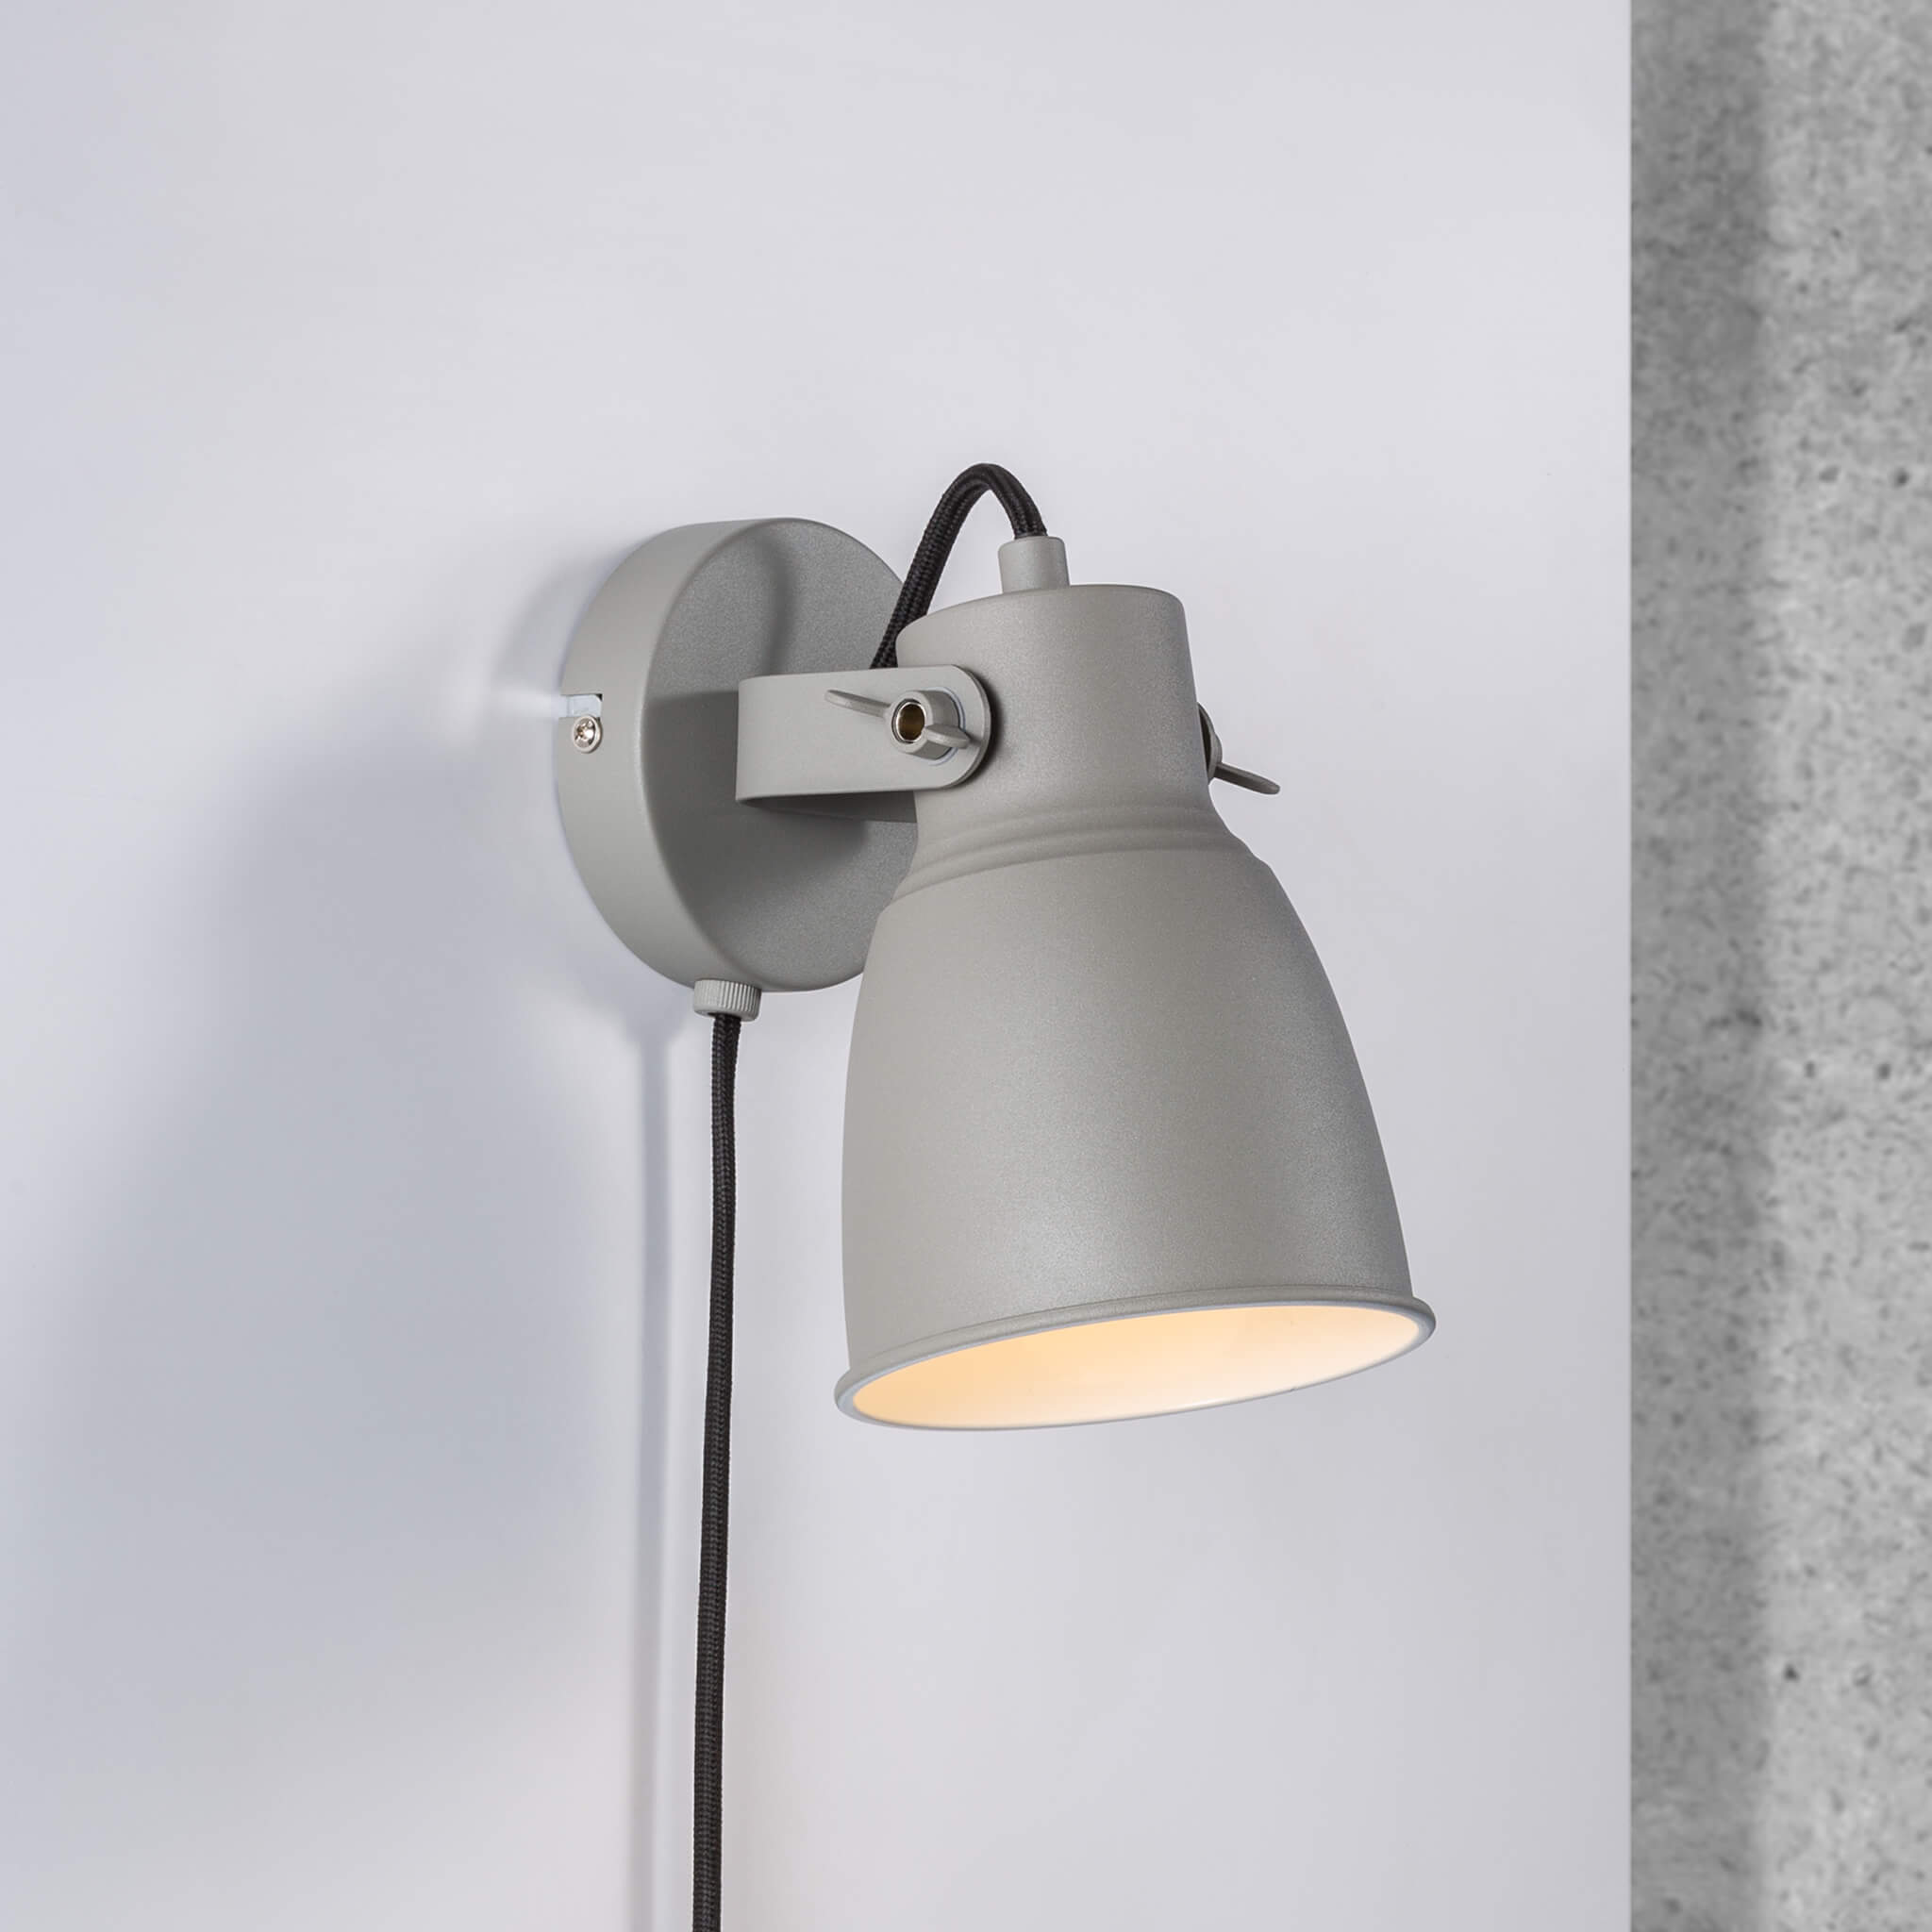 Nordlux Adrian Wall Lamp Lampsy